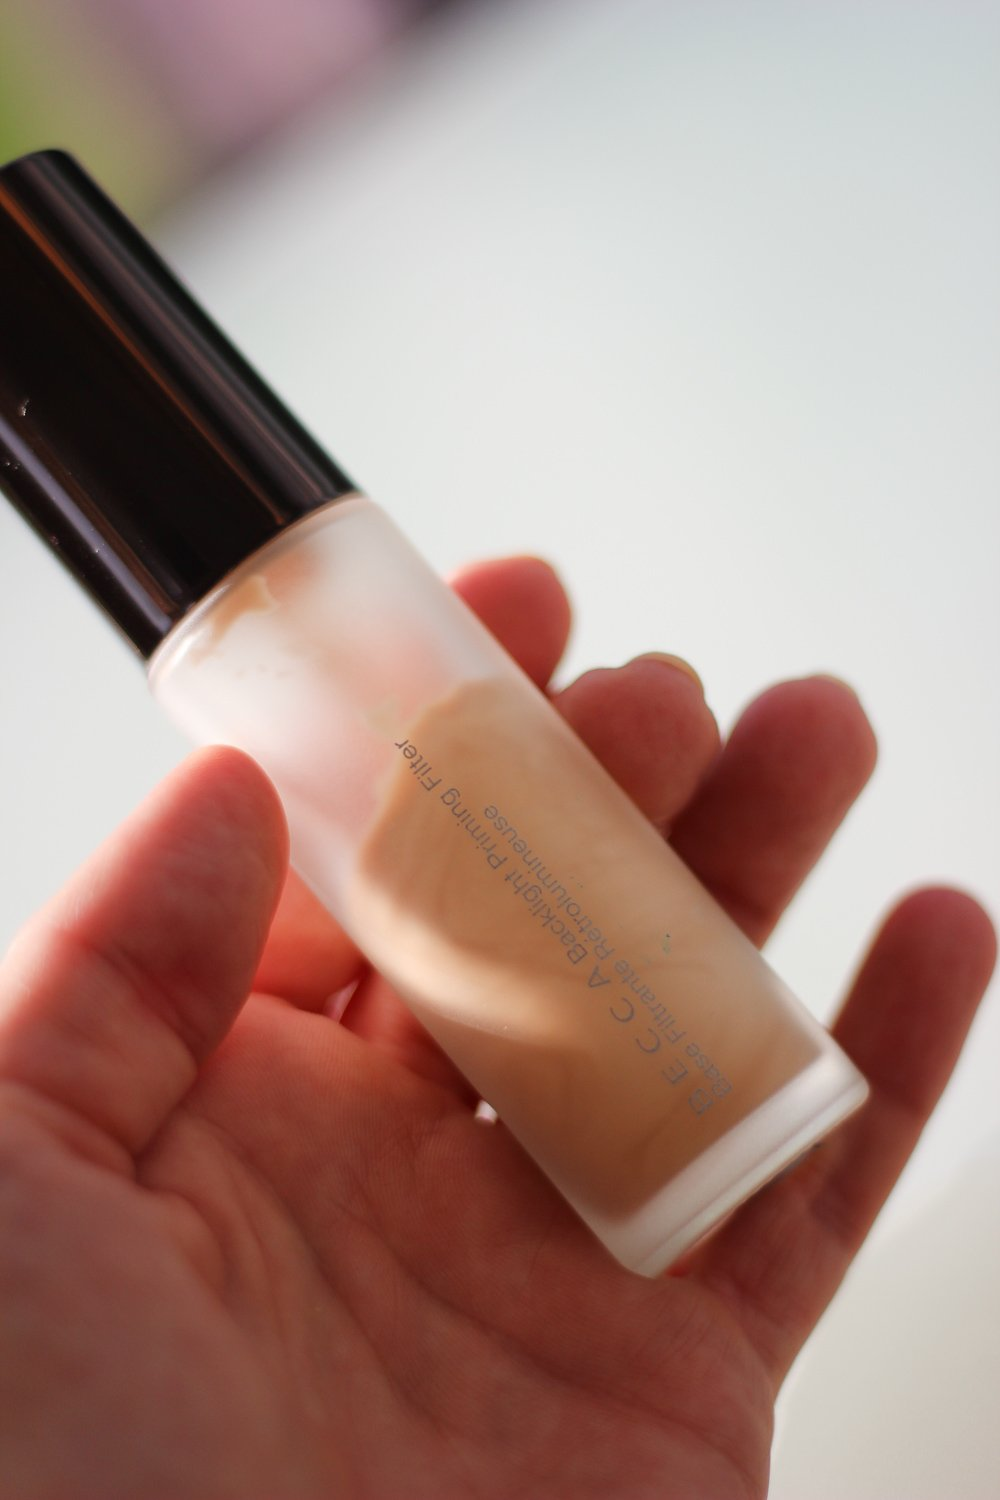 conny doll lifestyle: Highlighter Becca,